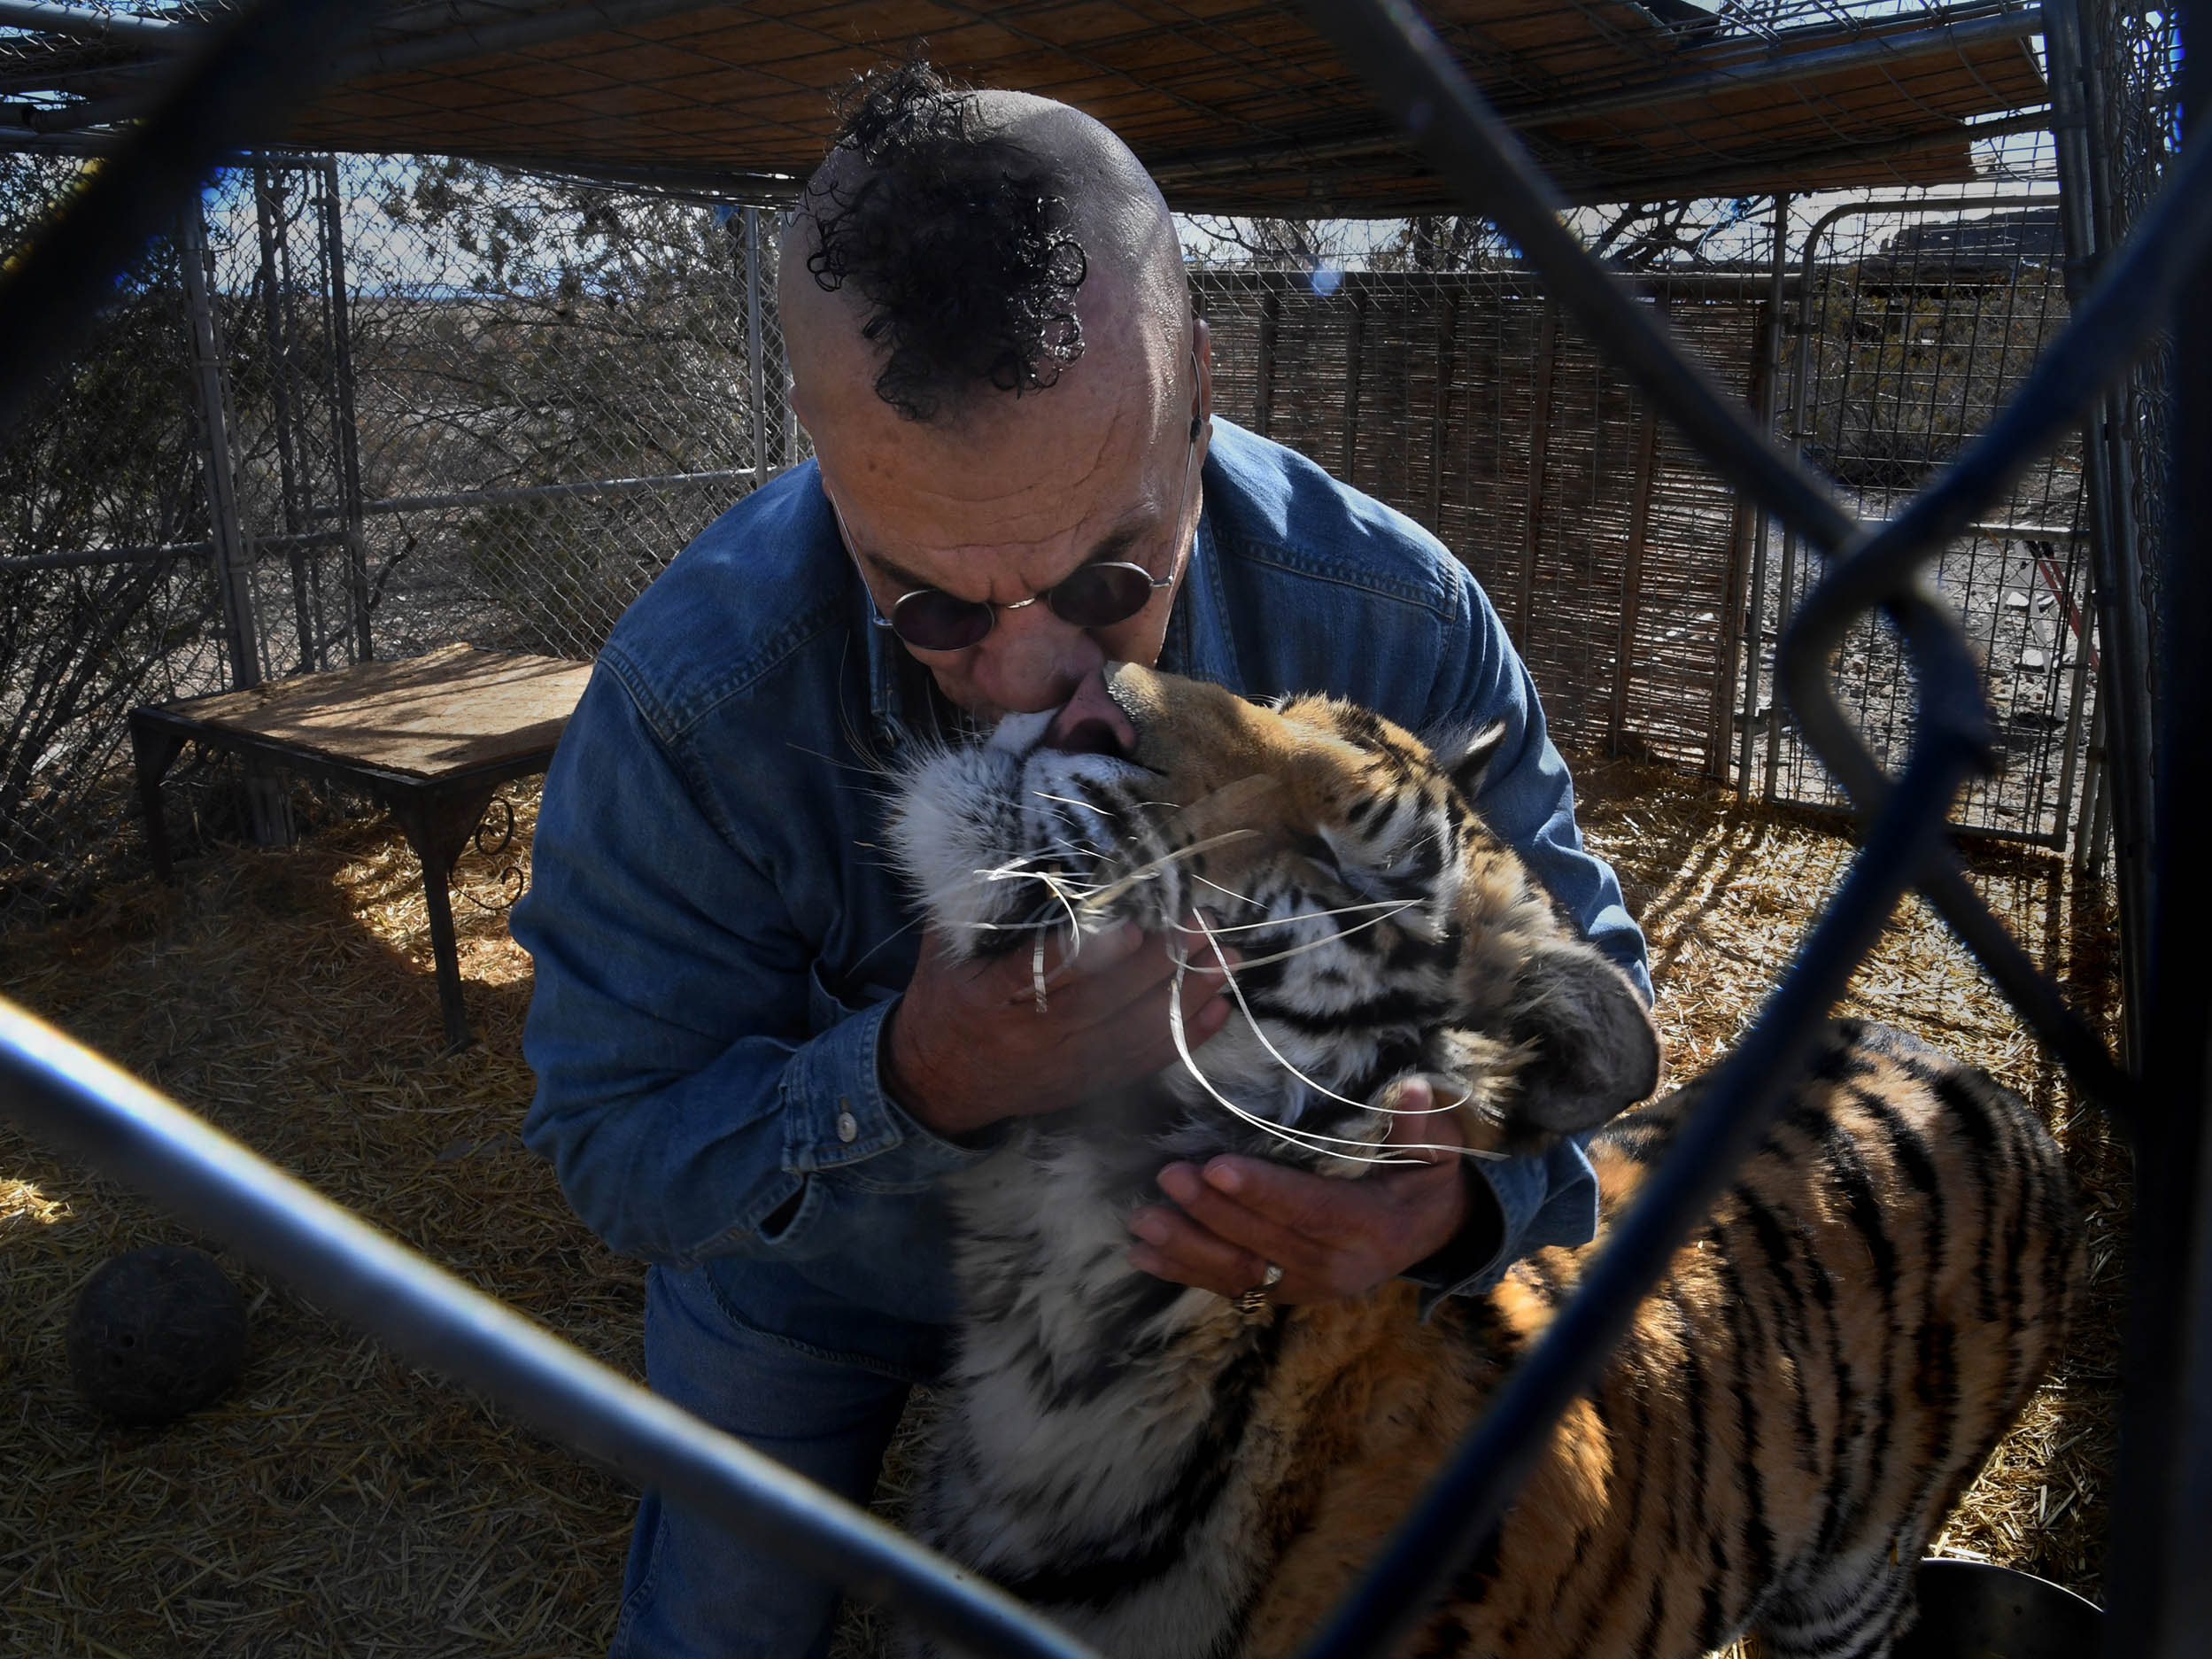 The problem with exotic animal ownership in America | The